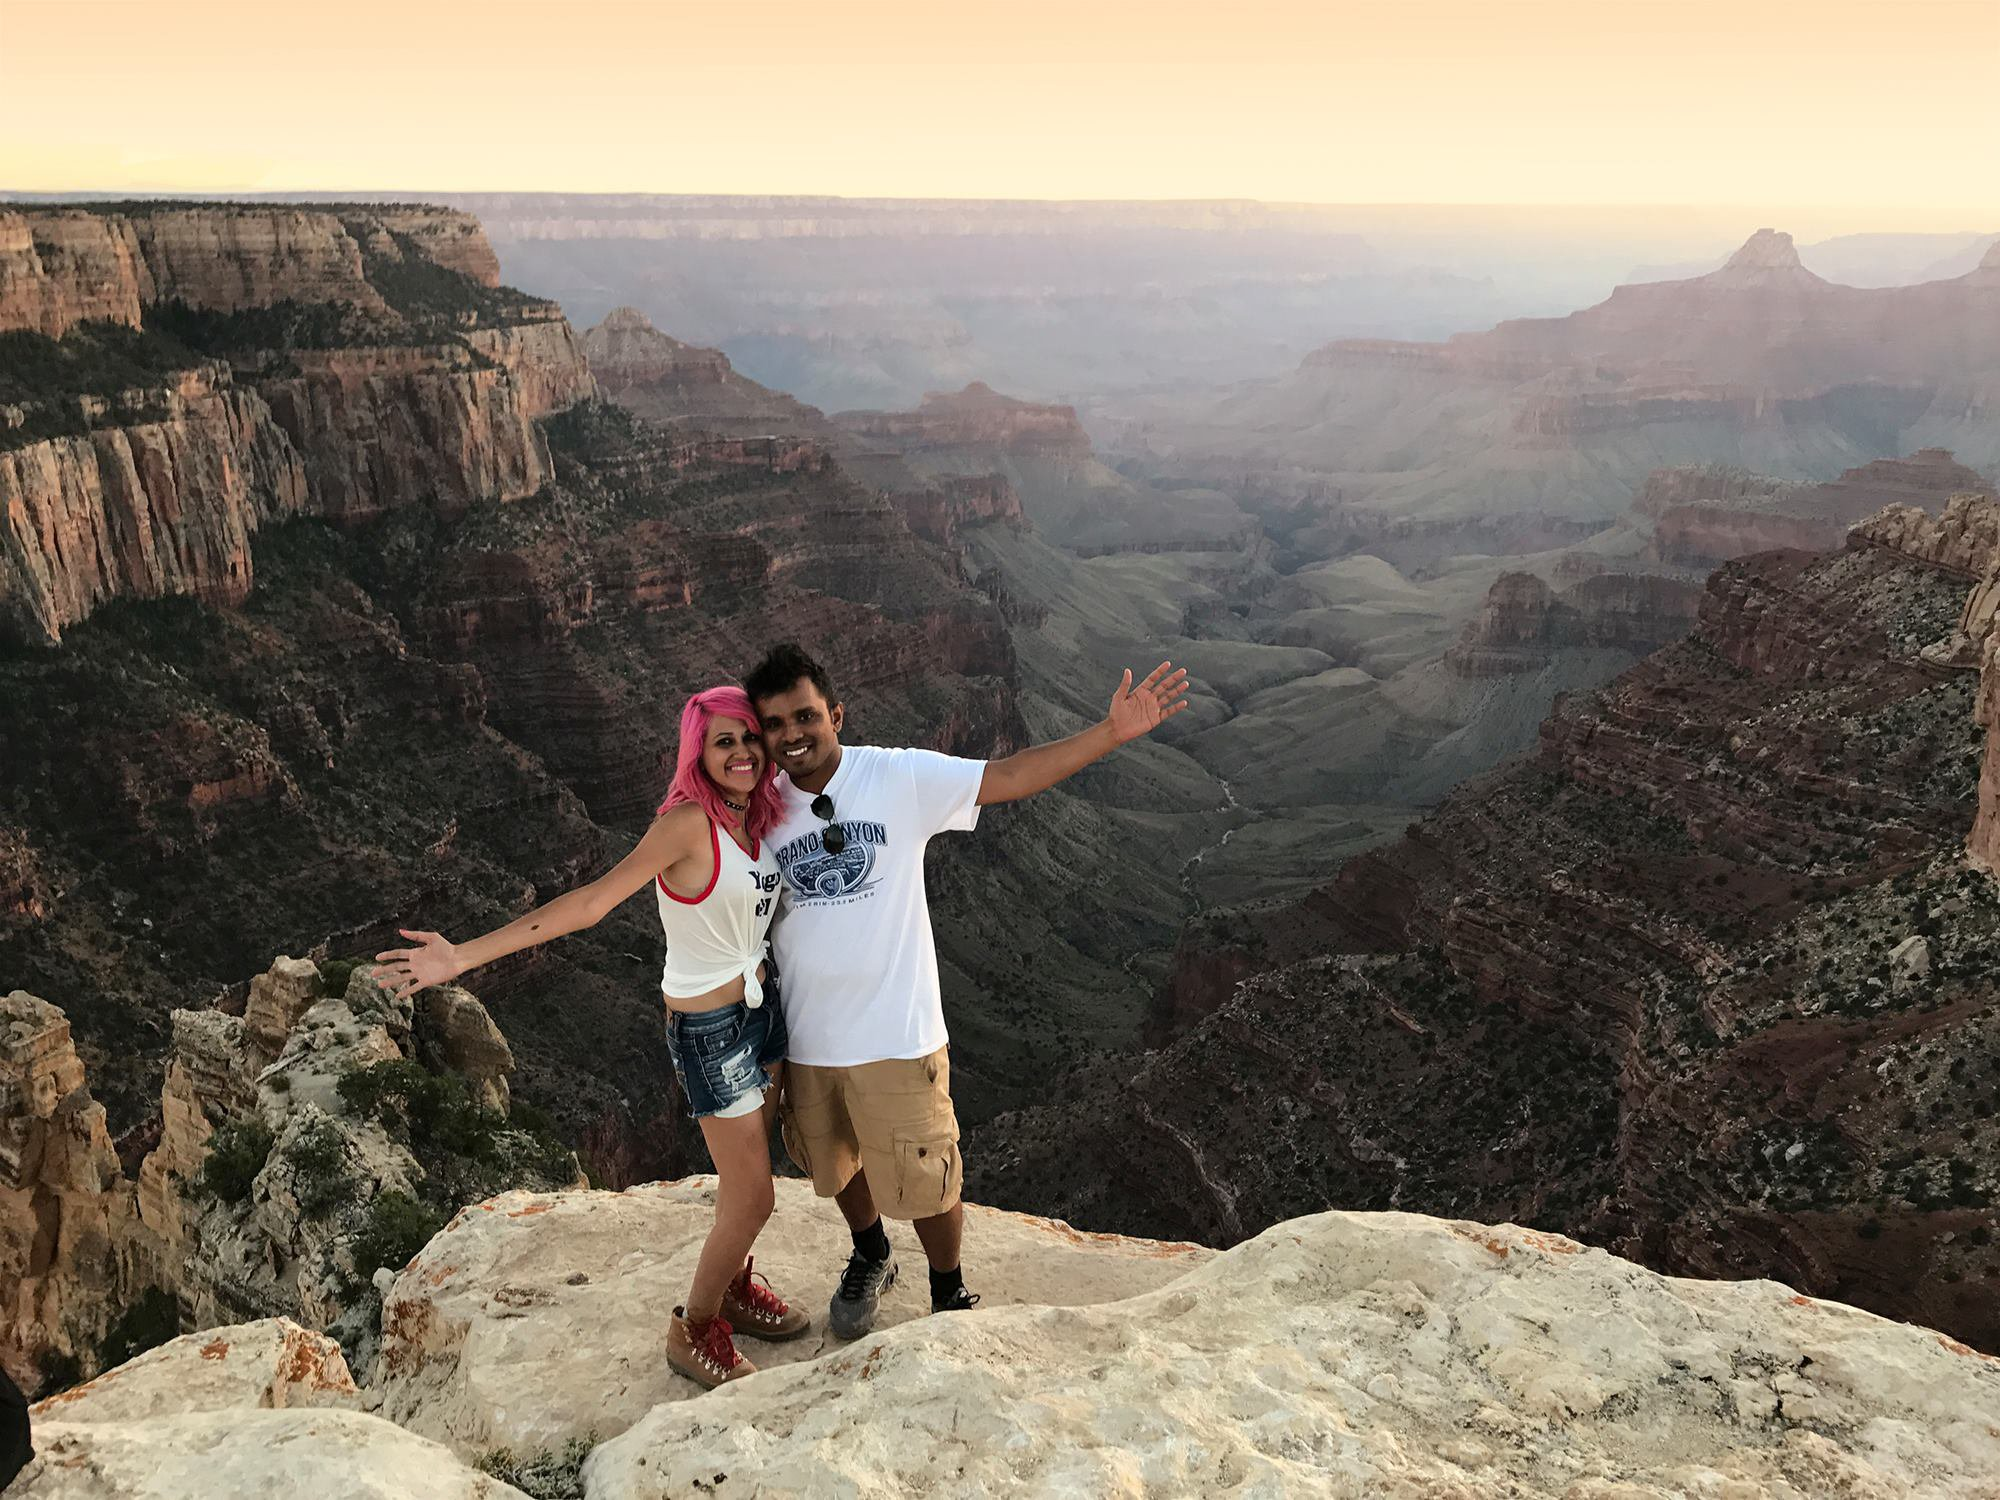 METRO GRAB FACEBOOK Couple Who Fell to Their Deaths at Yosemite National Park Identified as Popular Travel Bloggers Vishnu Viswanath and Meenakshi Moorthy https://www.facebook.com/photo.php?fbid=1630072127002846&set=a.283846398292099&type=3&theater